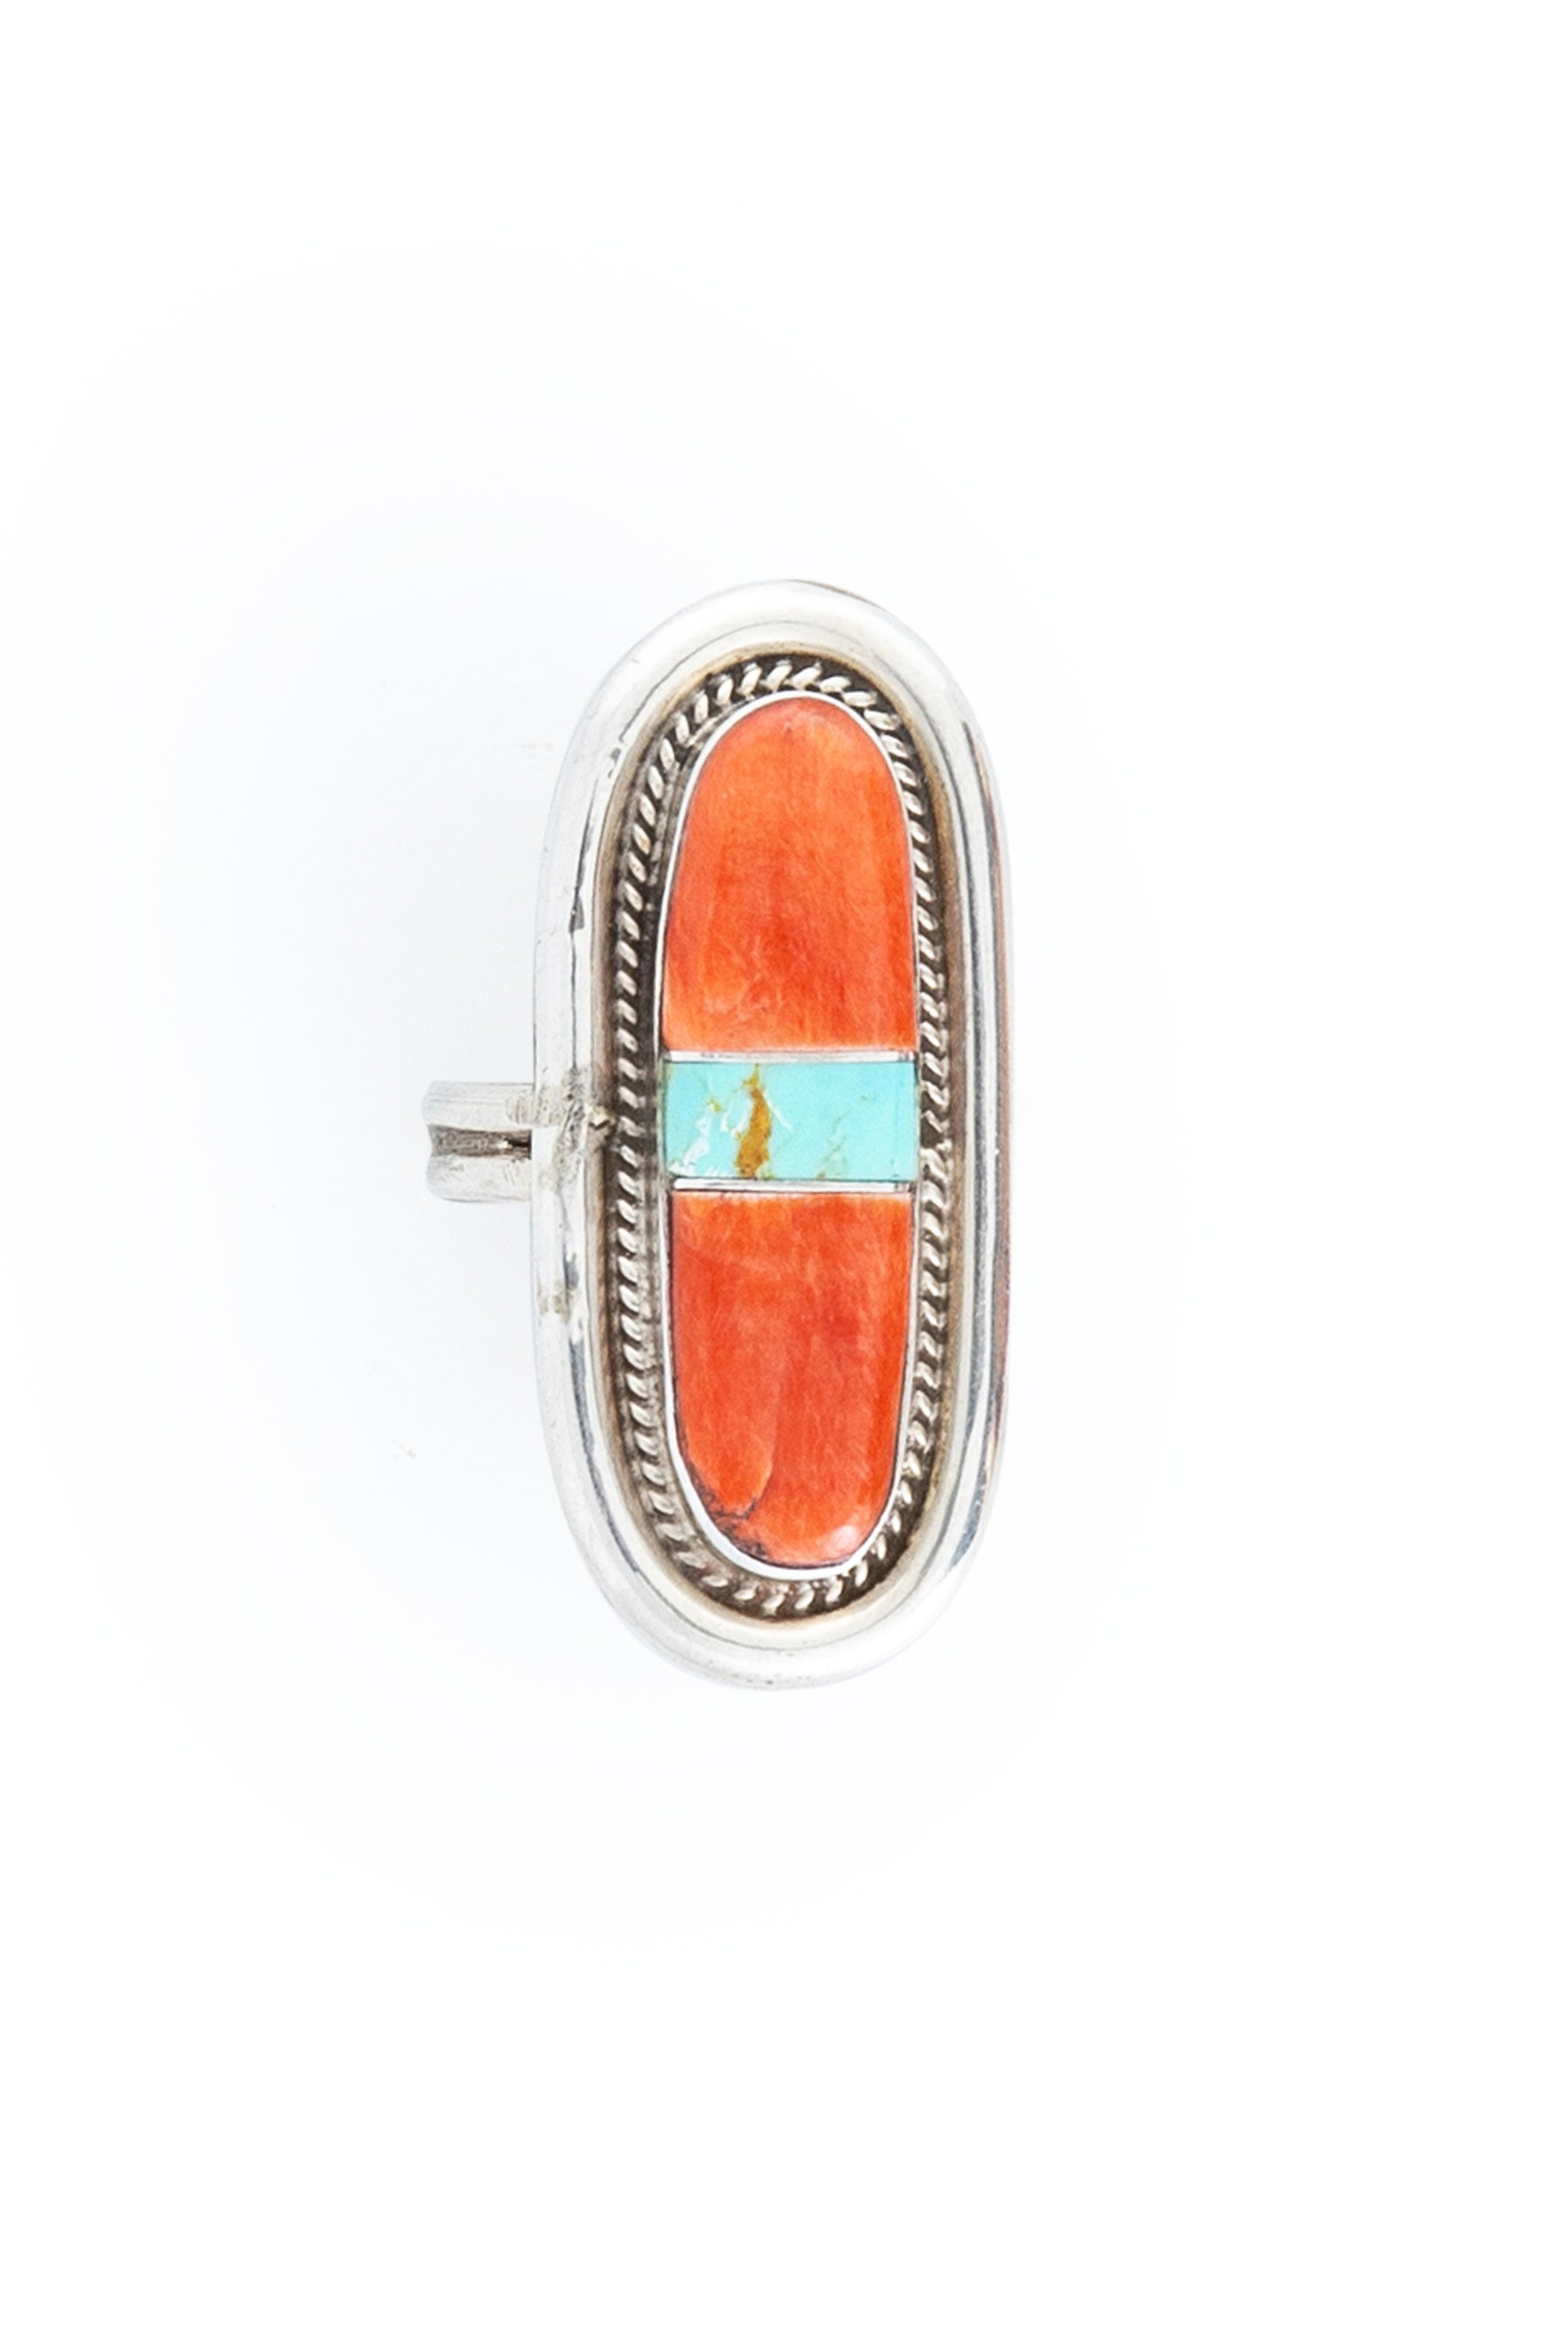 Ring, Inlay, Coral, Channel, Hallmark, Vintage, 623